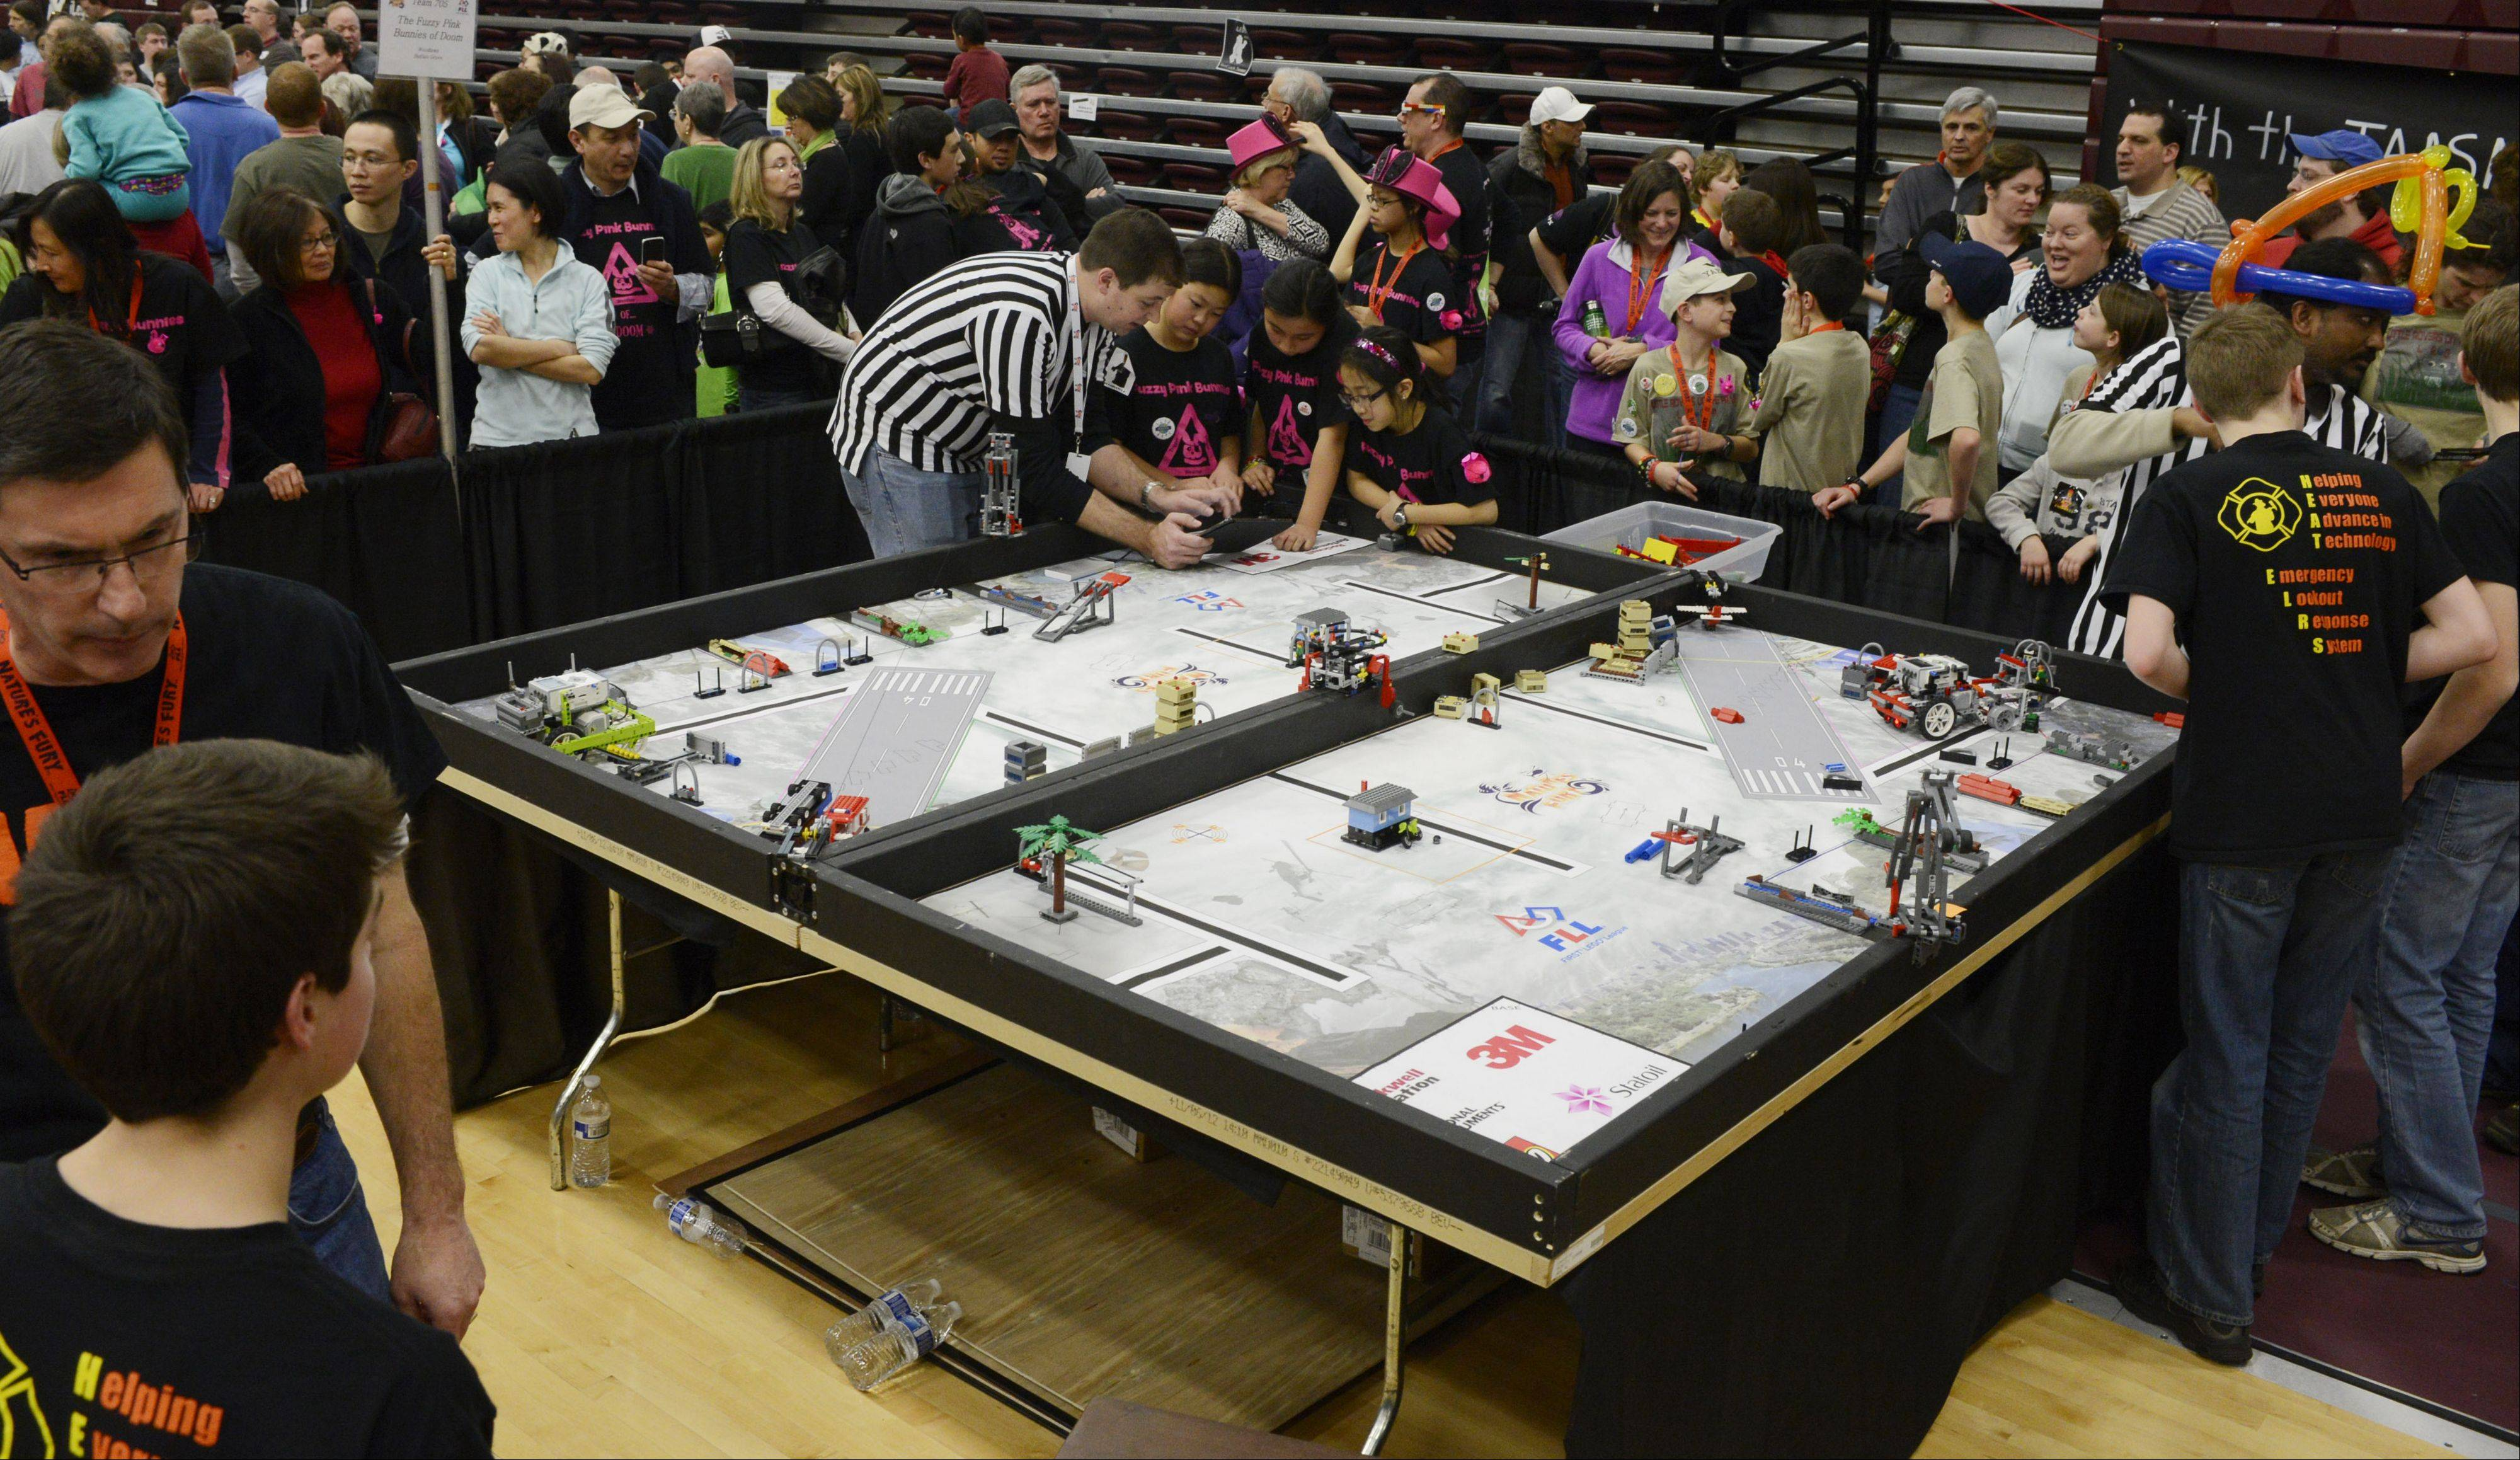 Teams participate in the Illinois First Lego League's Northern Illinois title competition Saturday at the Forest View Educational Center in Arlington Heights.